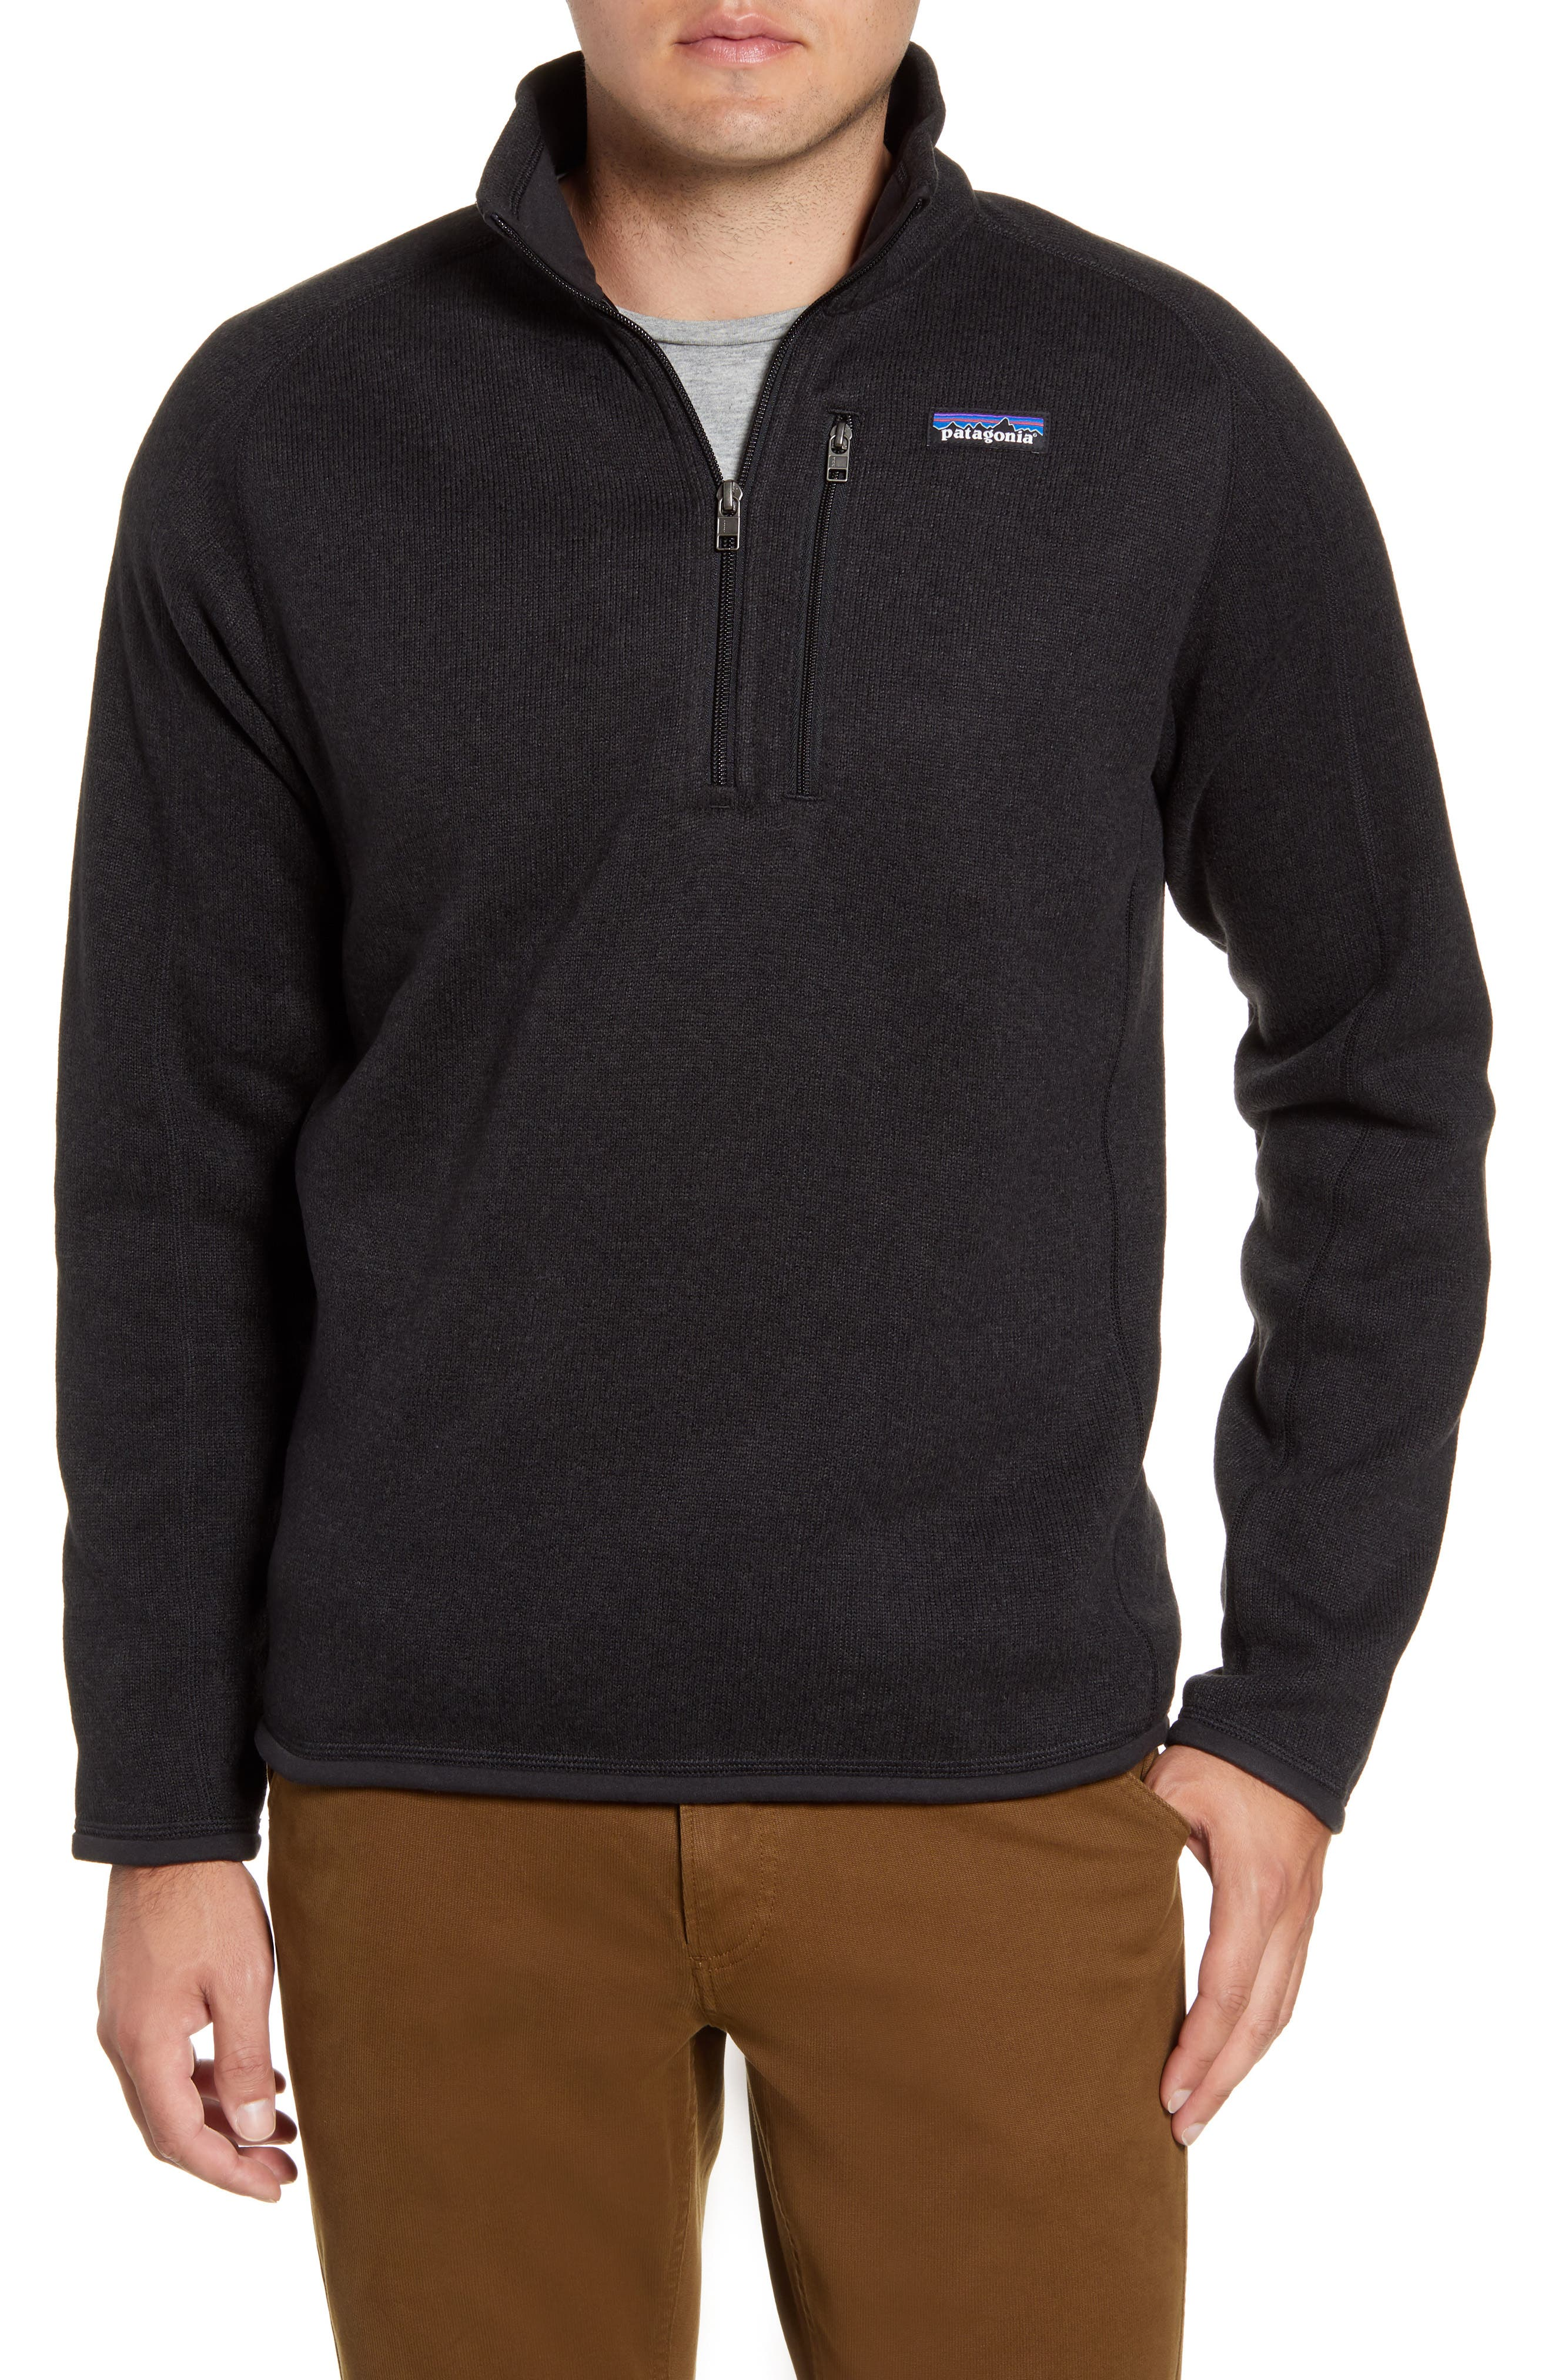 Better Sweater® Quarter Zip Jacket by Patagonia